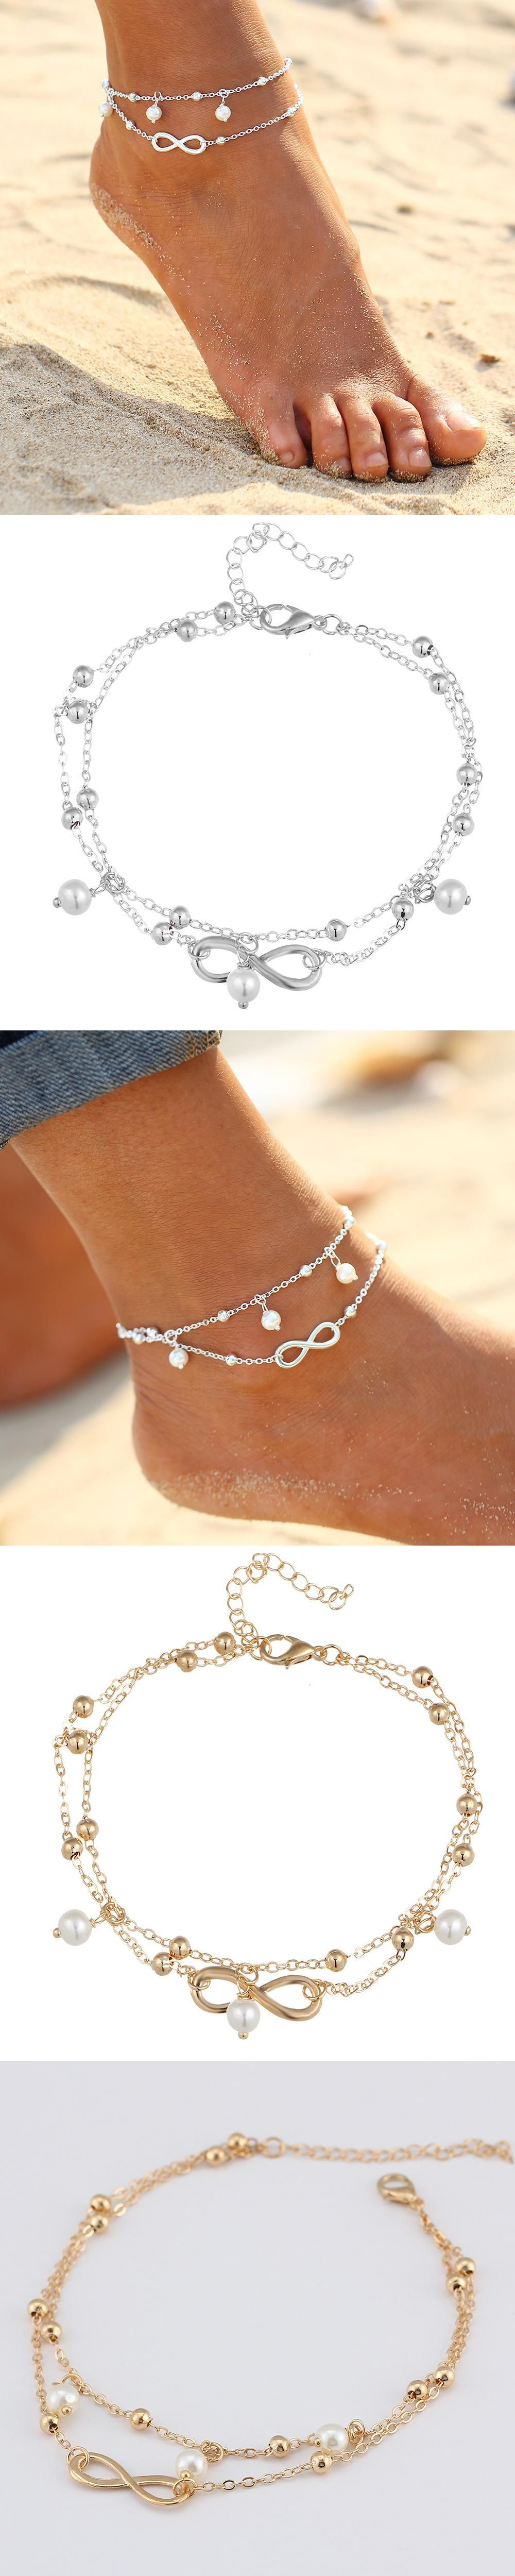 anklet mu the payal woman photographer